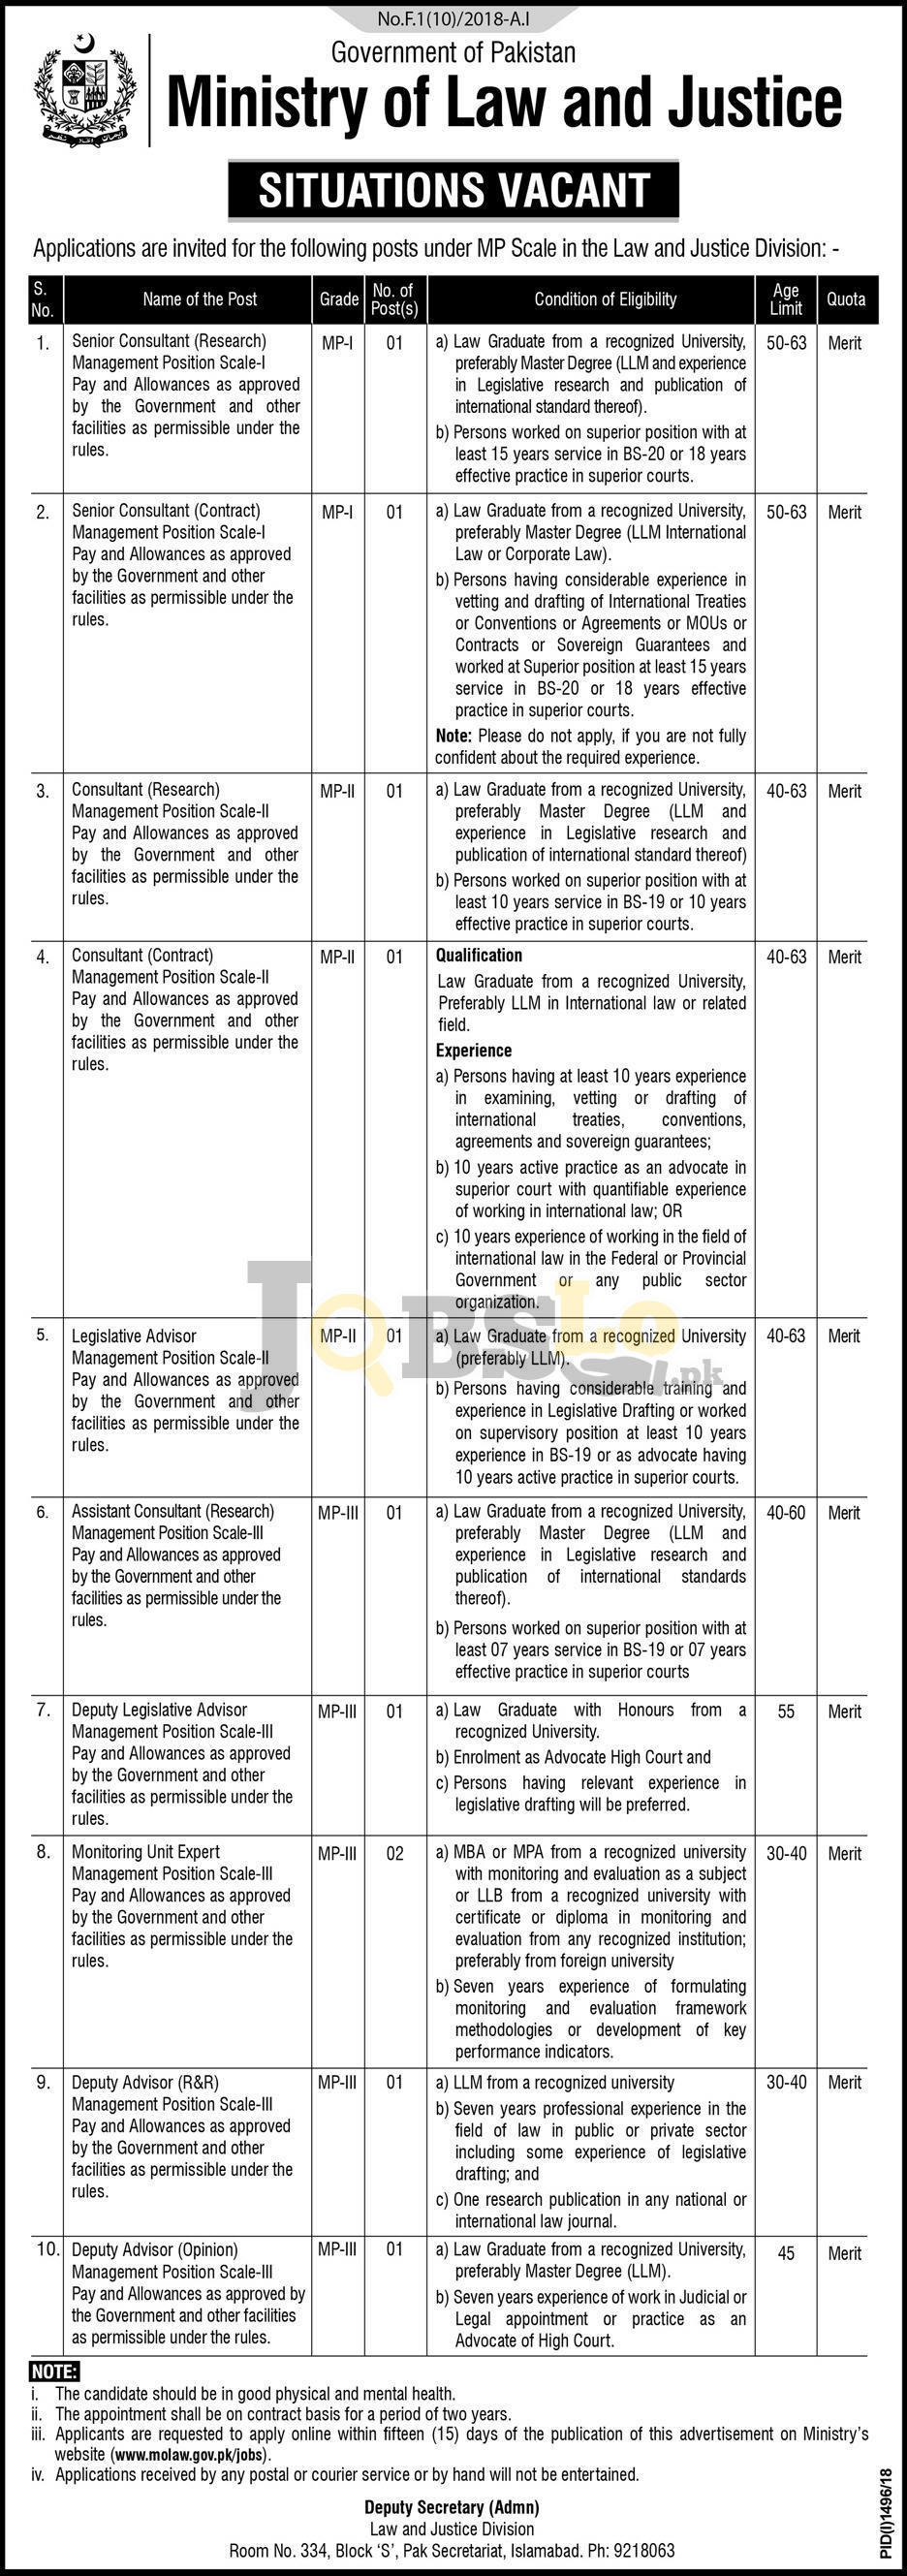 Ministry of Law and Justice Jobs 2018 Apply Online Last Date | Govt of Pakistan